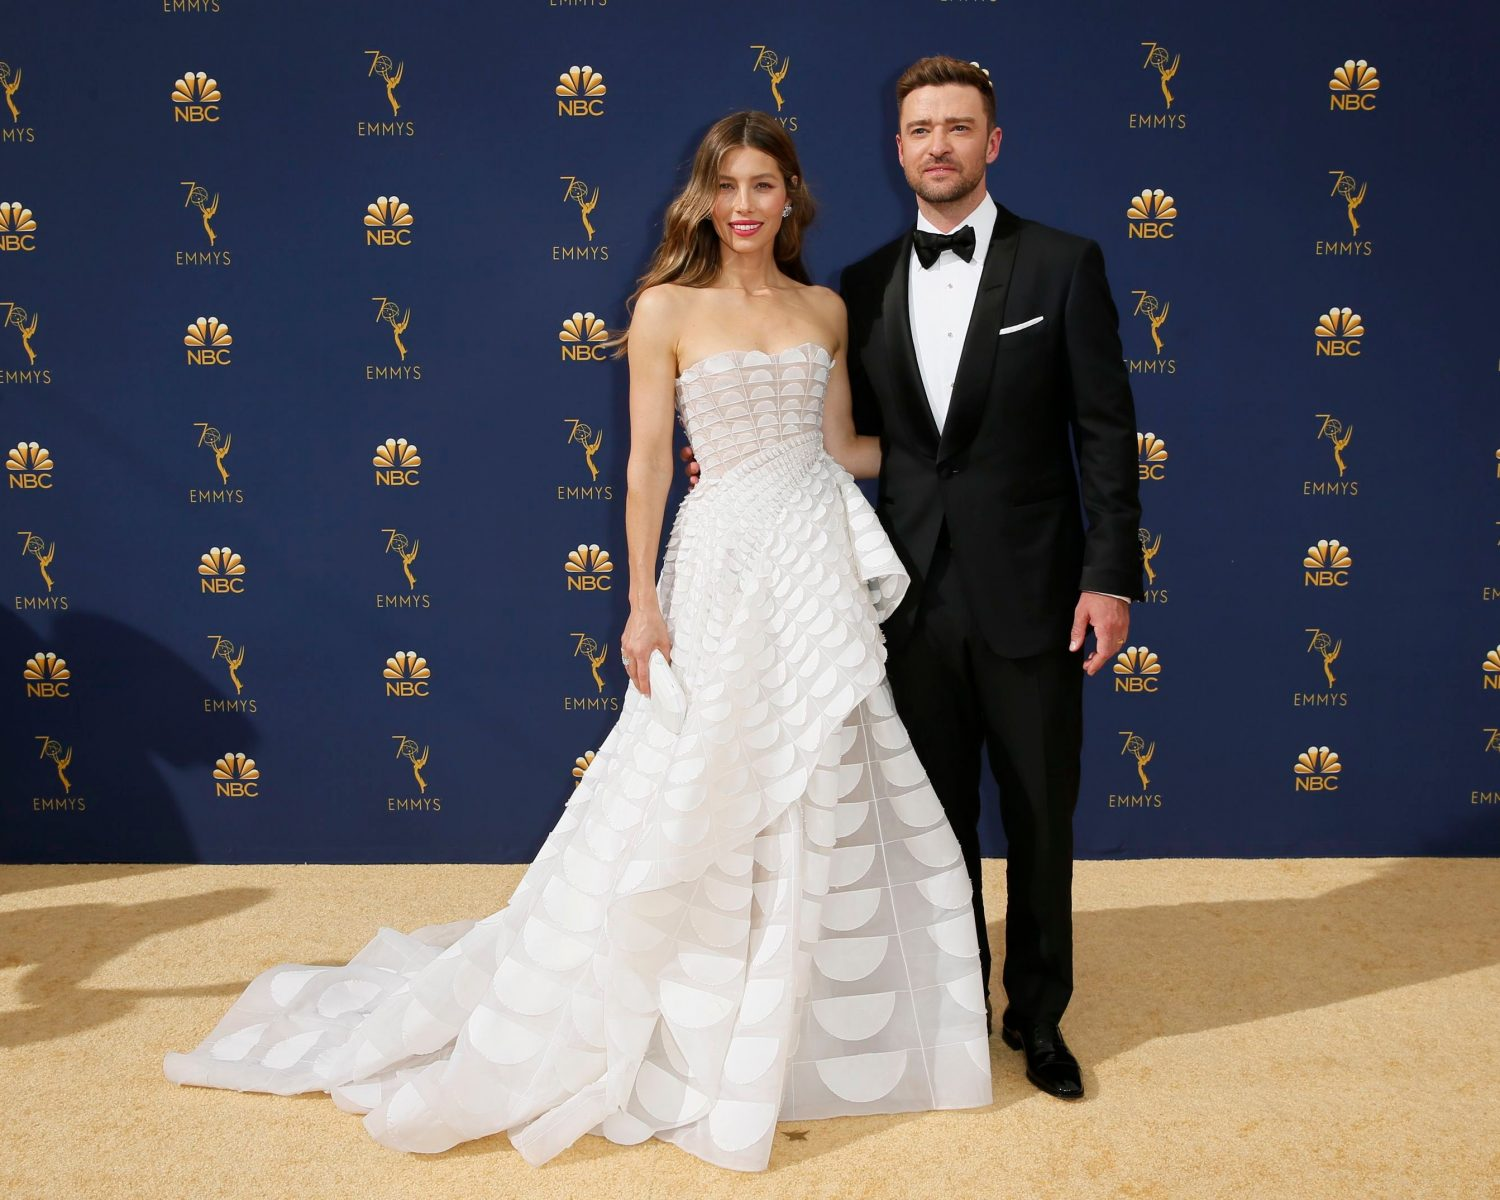 Image result for Justin Timberlake and Jessica Biel wedding